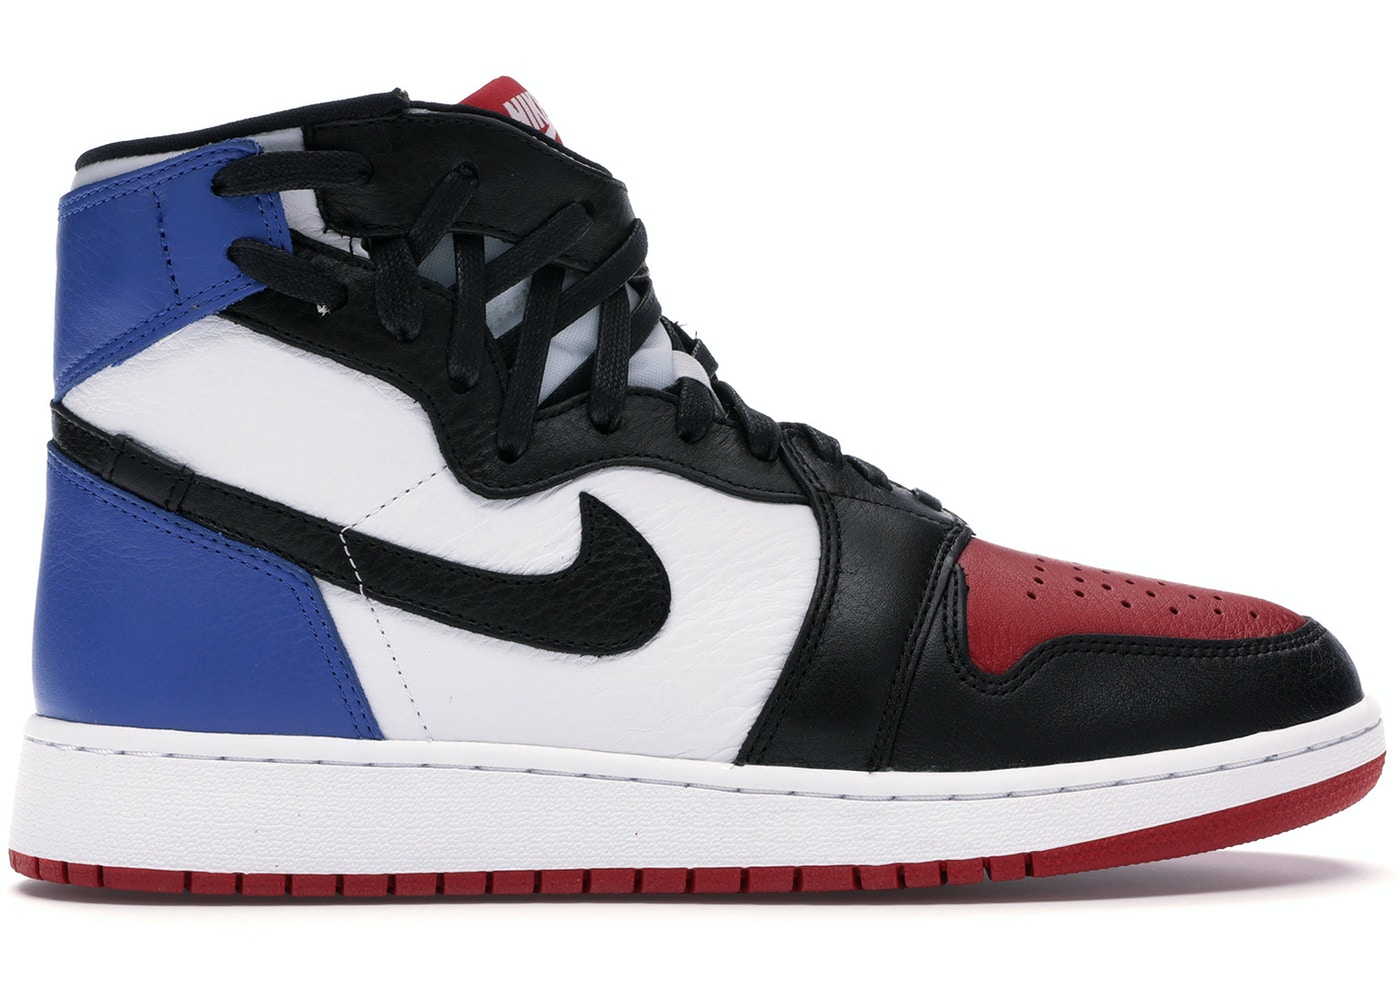 61636379b7ae Jordan 1 Rebel XX Top 3 (W) - AT4151-001